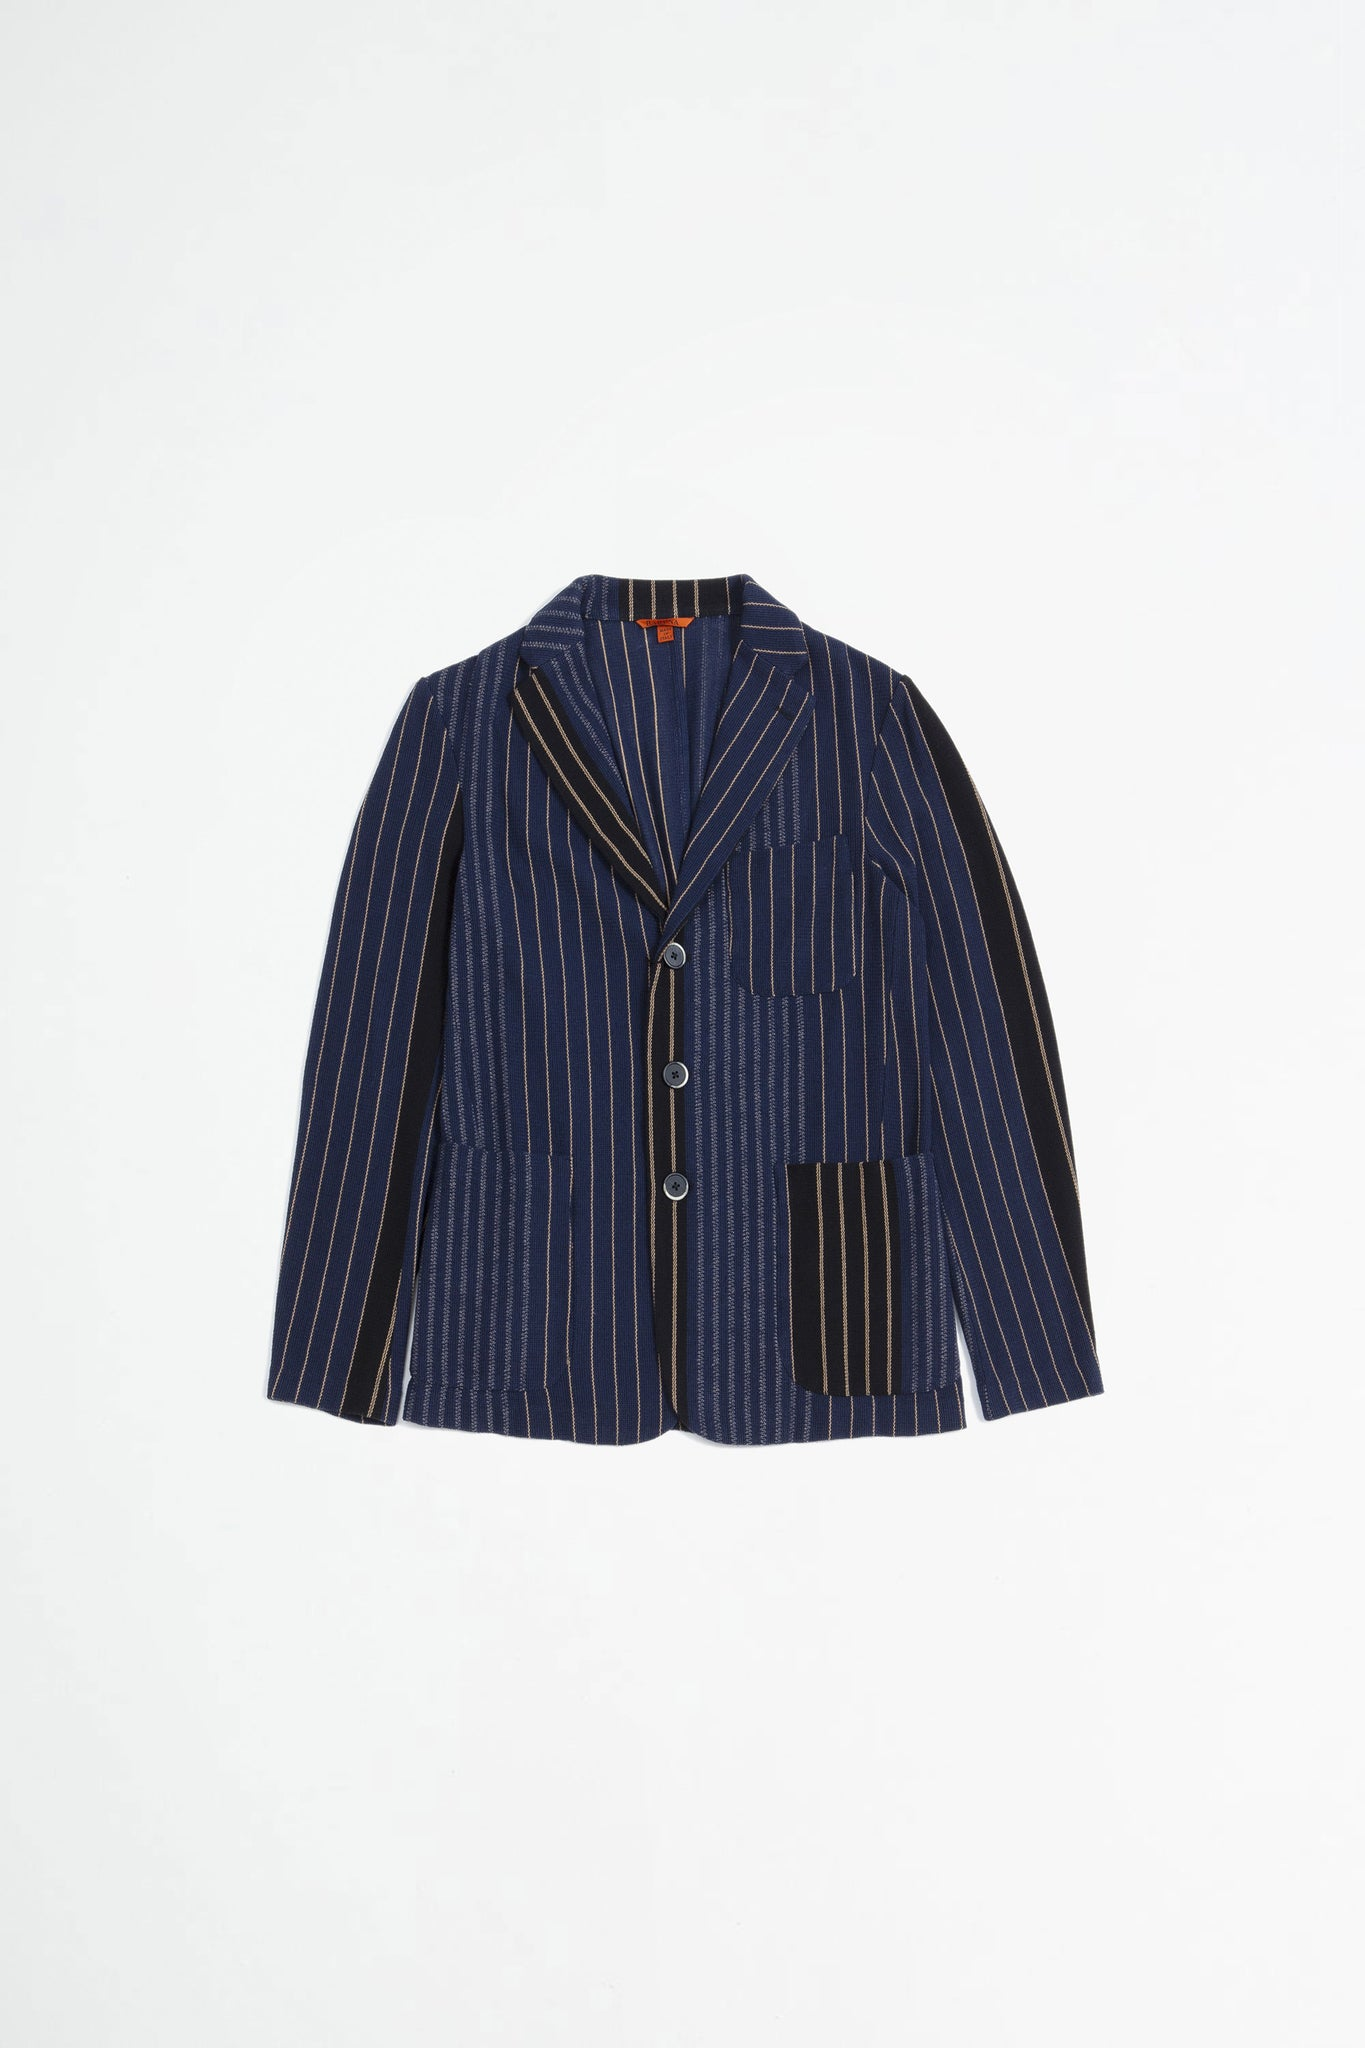 Jacket Torceo navy